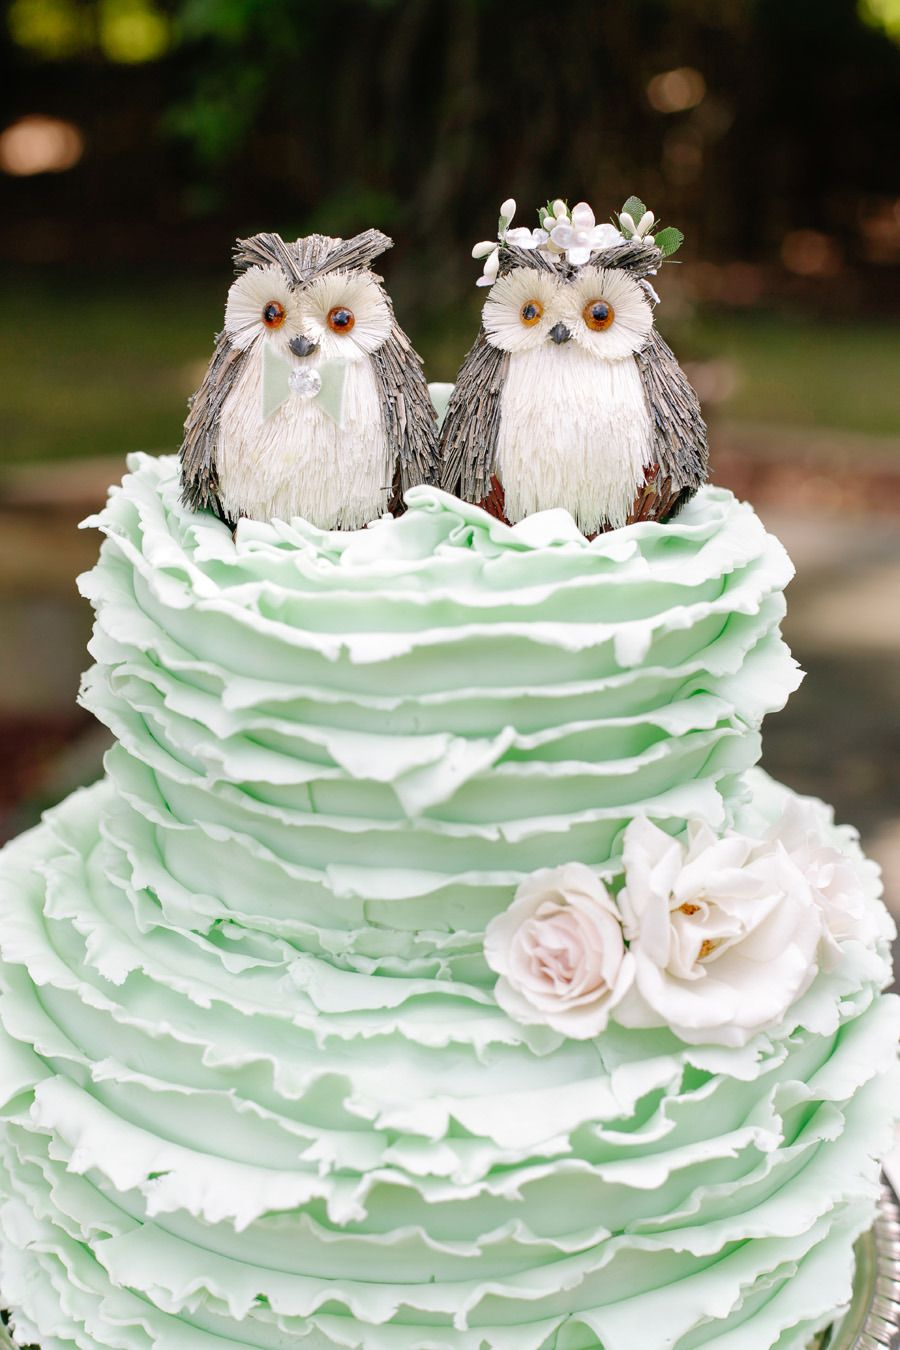 New Creative Wedding Cake Ideas Creative wedding cakes Wedding